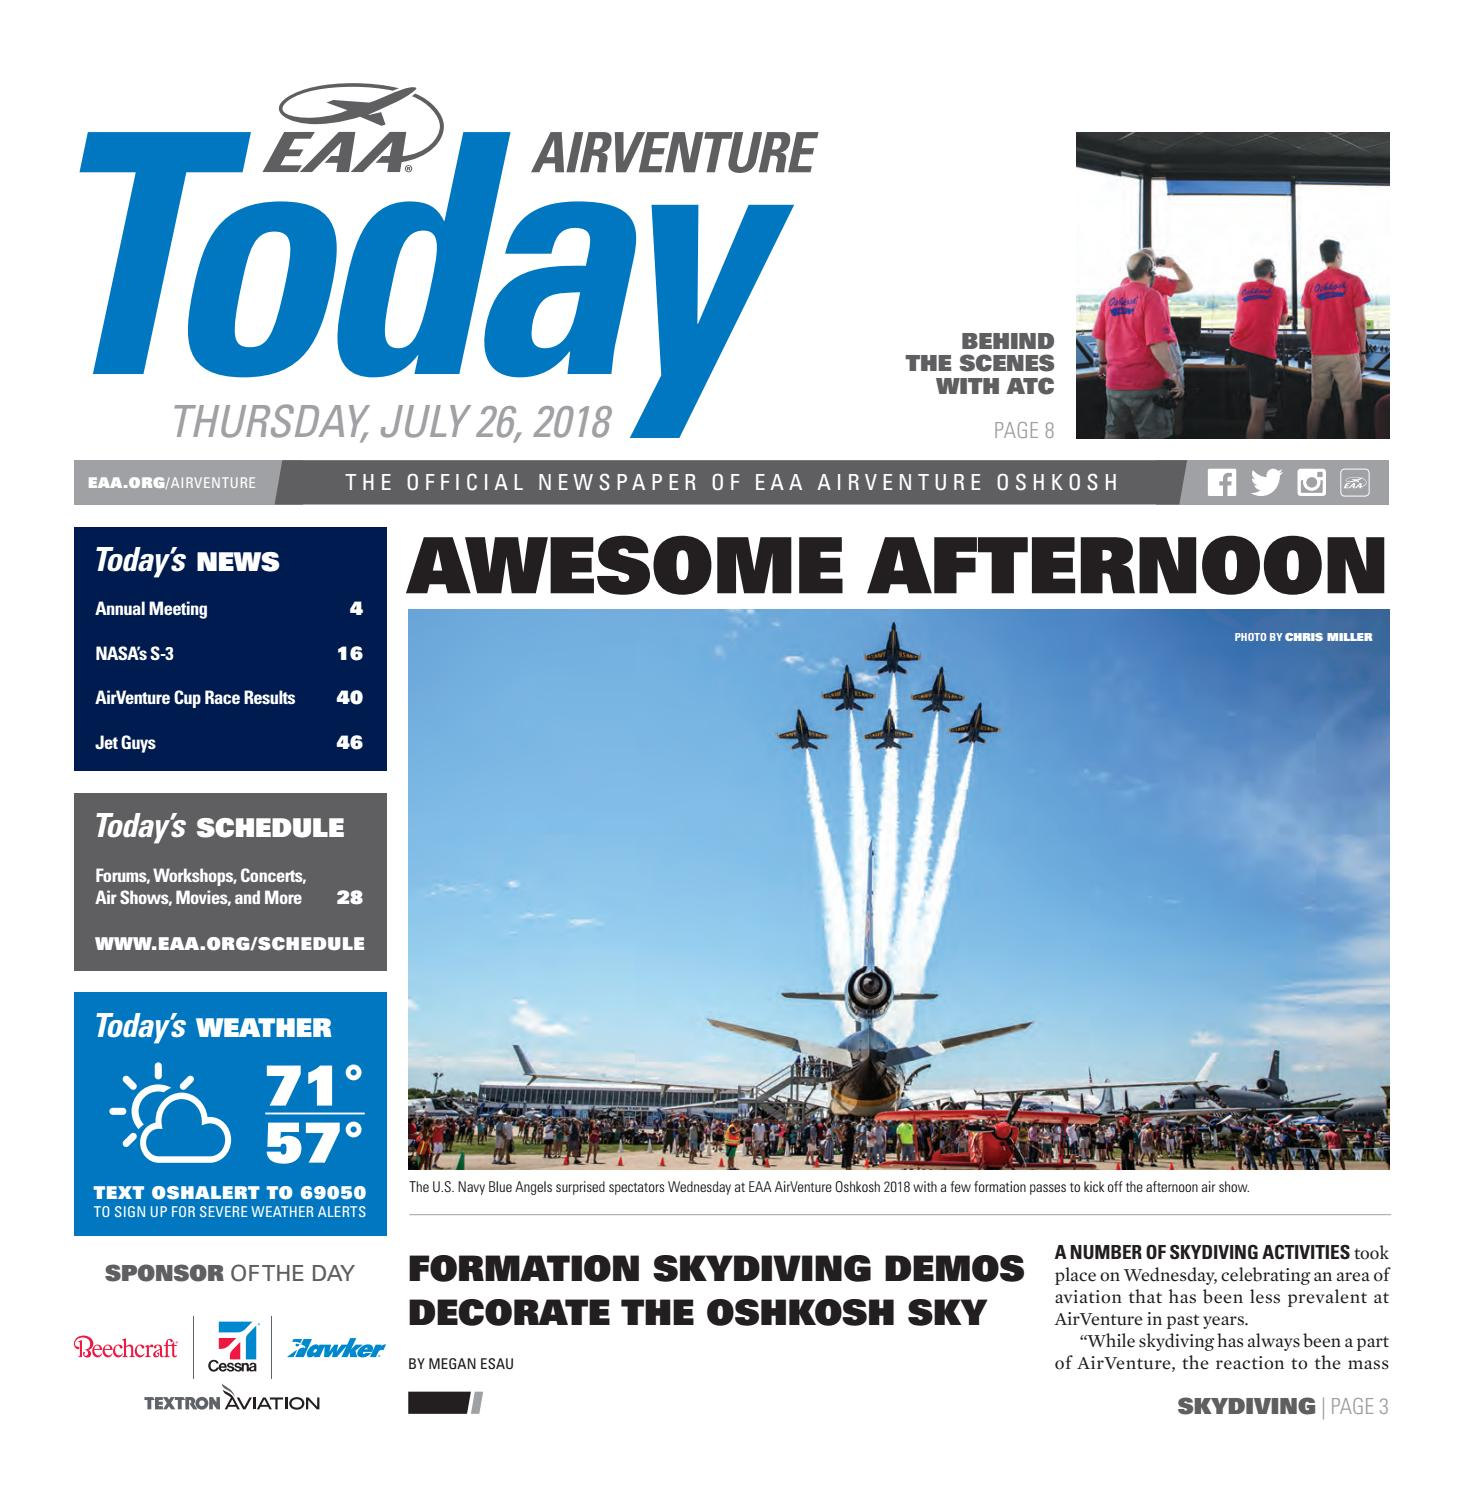 EAA AirVenture Today - Thursday, July 26, 2018 by EAA